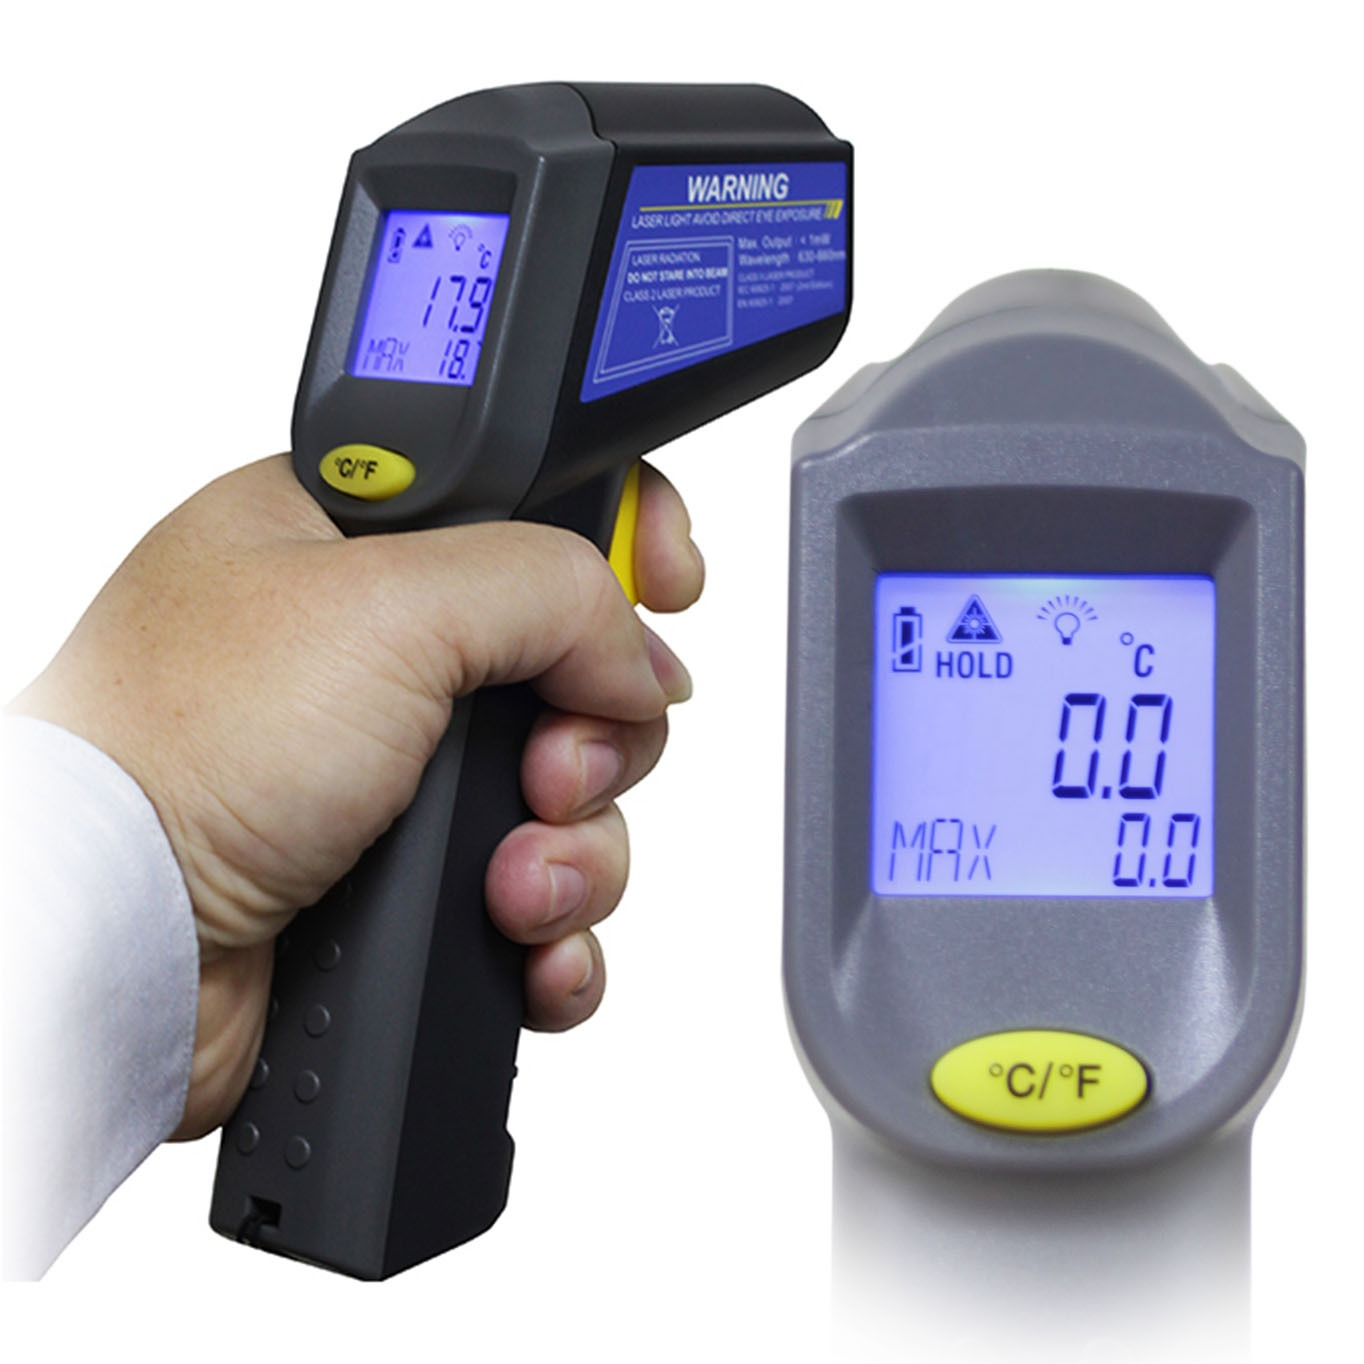 General Tools Infrared Thermometer for Testing Equipment made by ECPAL VEHICLE CO., LTD. 威爾可有限公司 - MatchSupplier.com